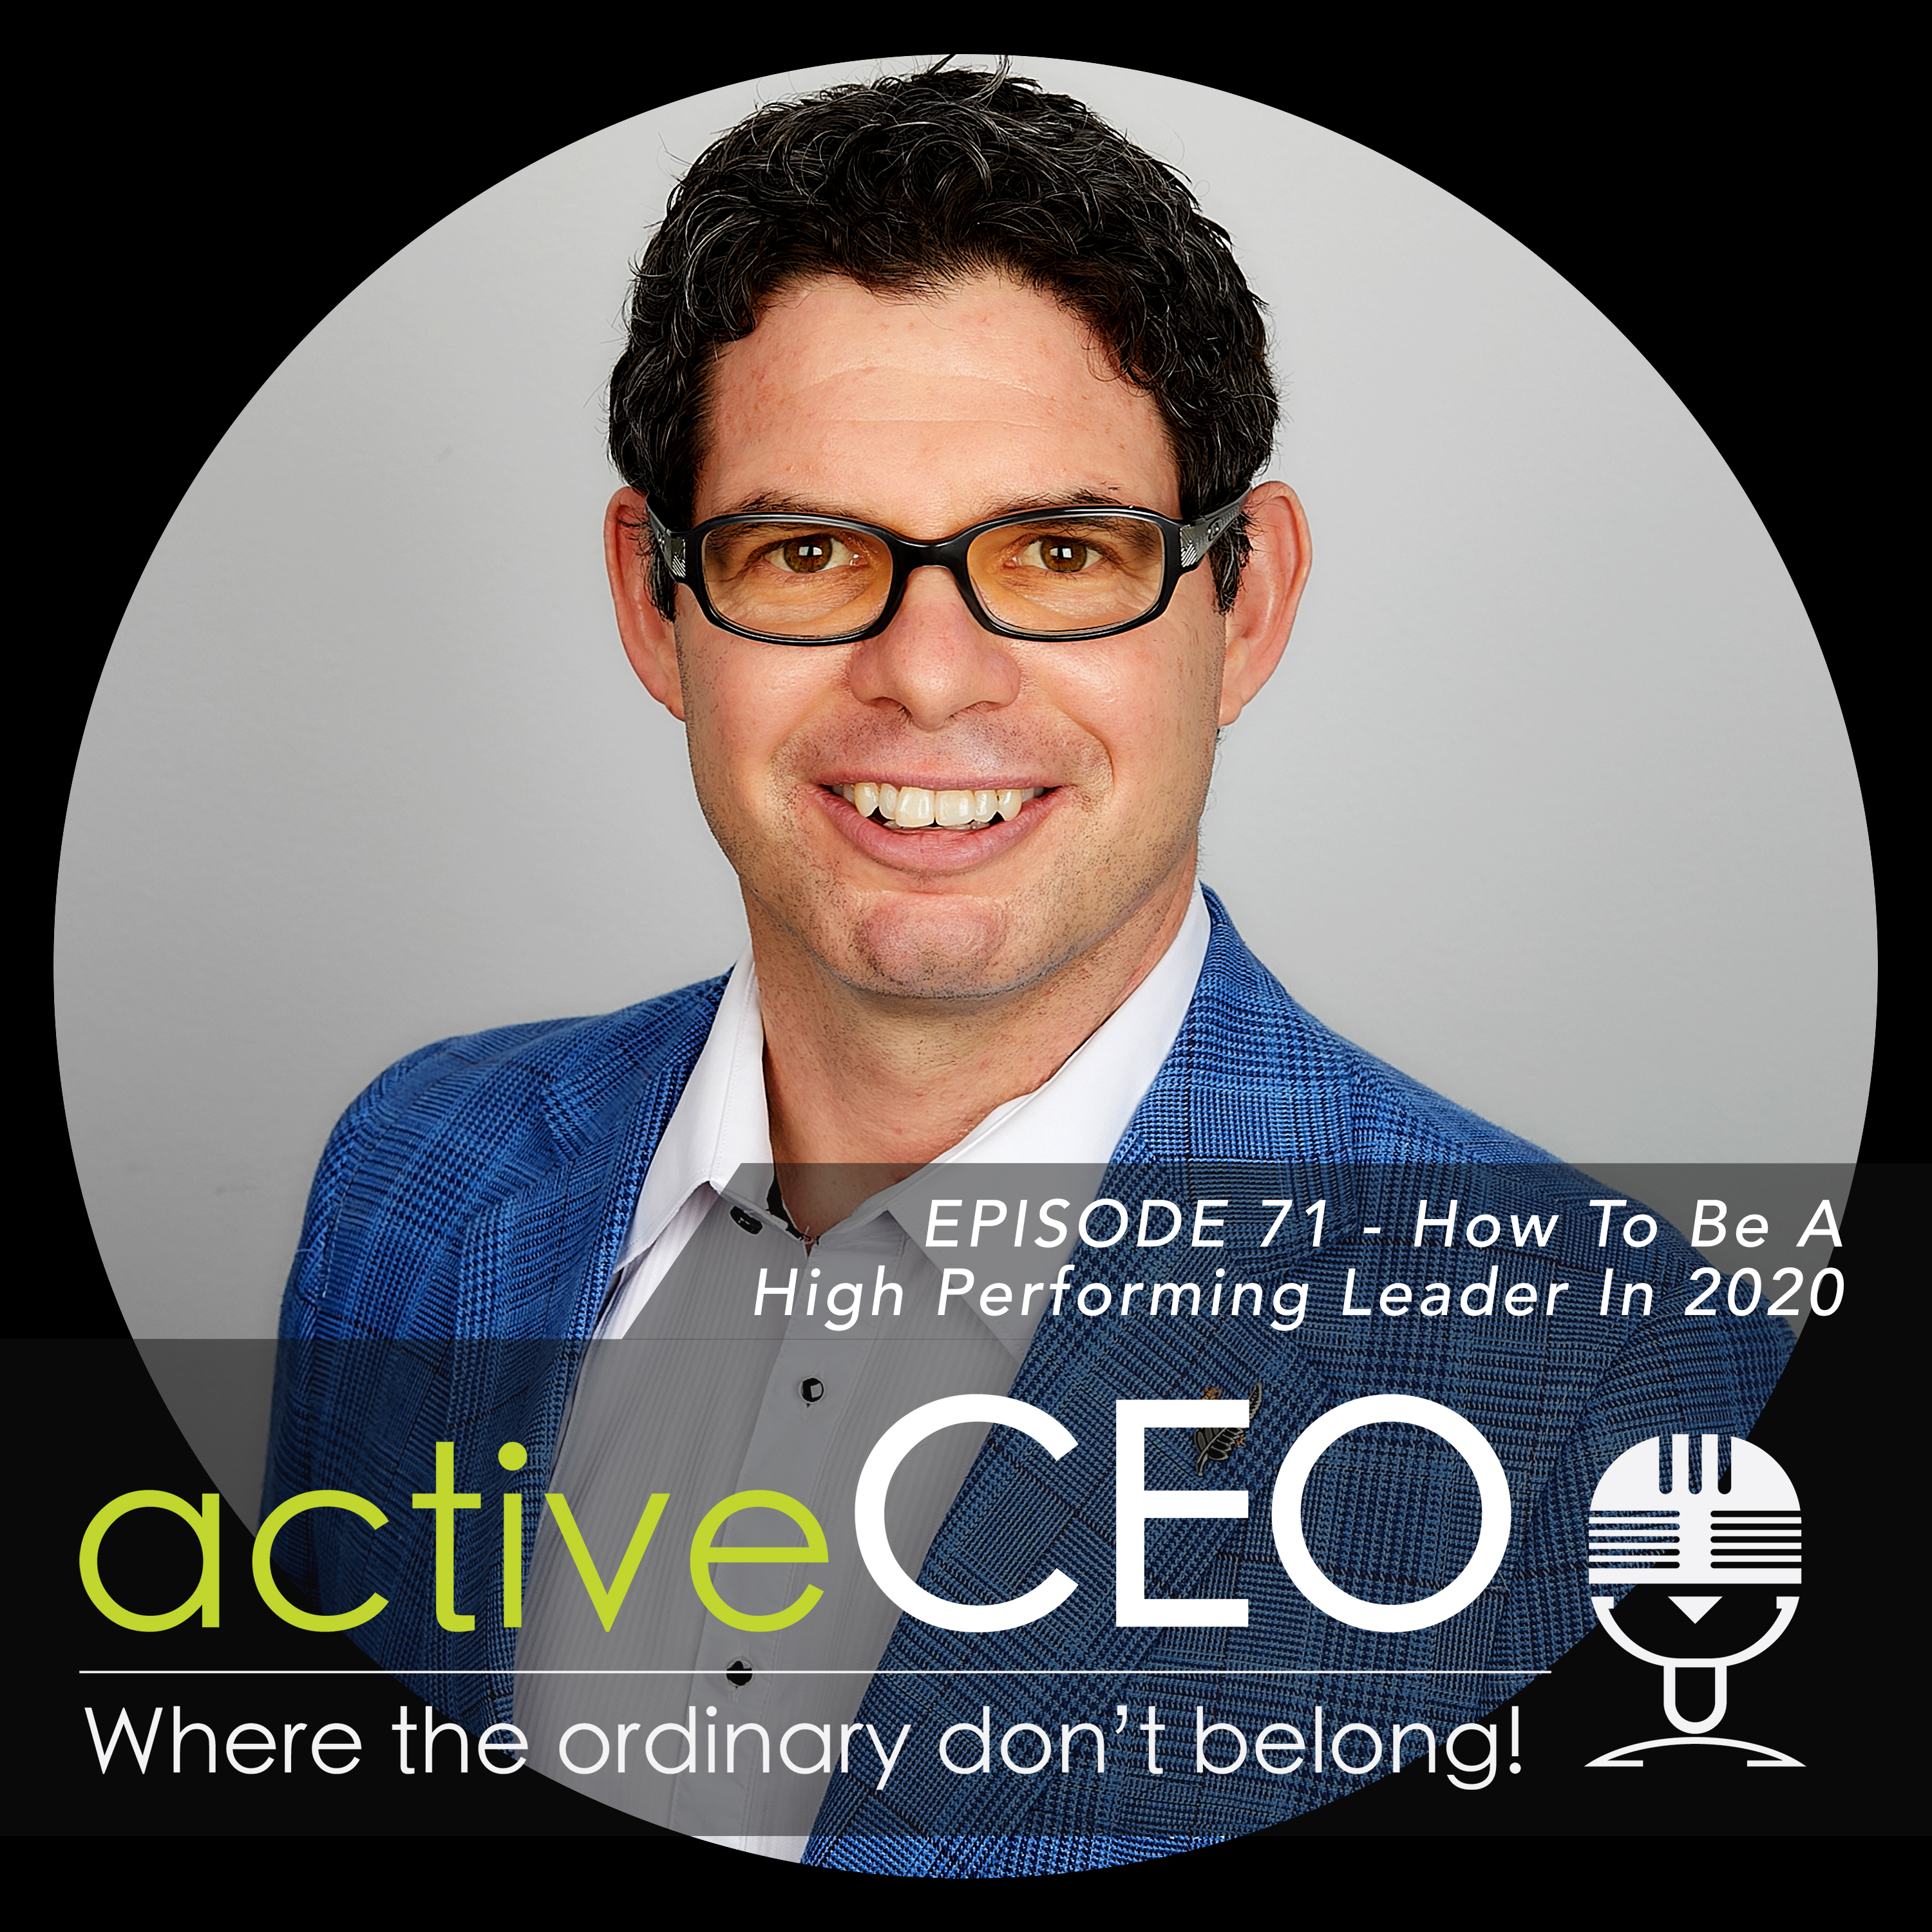 active CEO Podcast #71 How To Be A High Performing Leader In 2020 Craig Johns